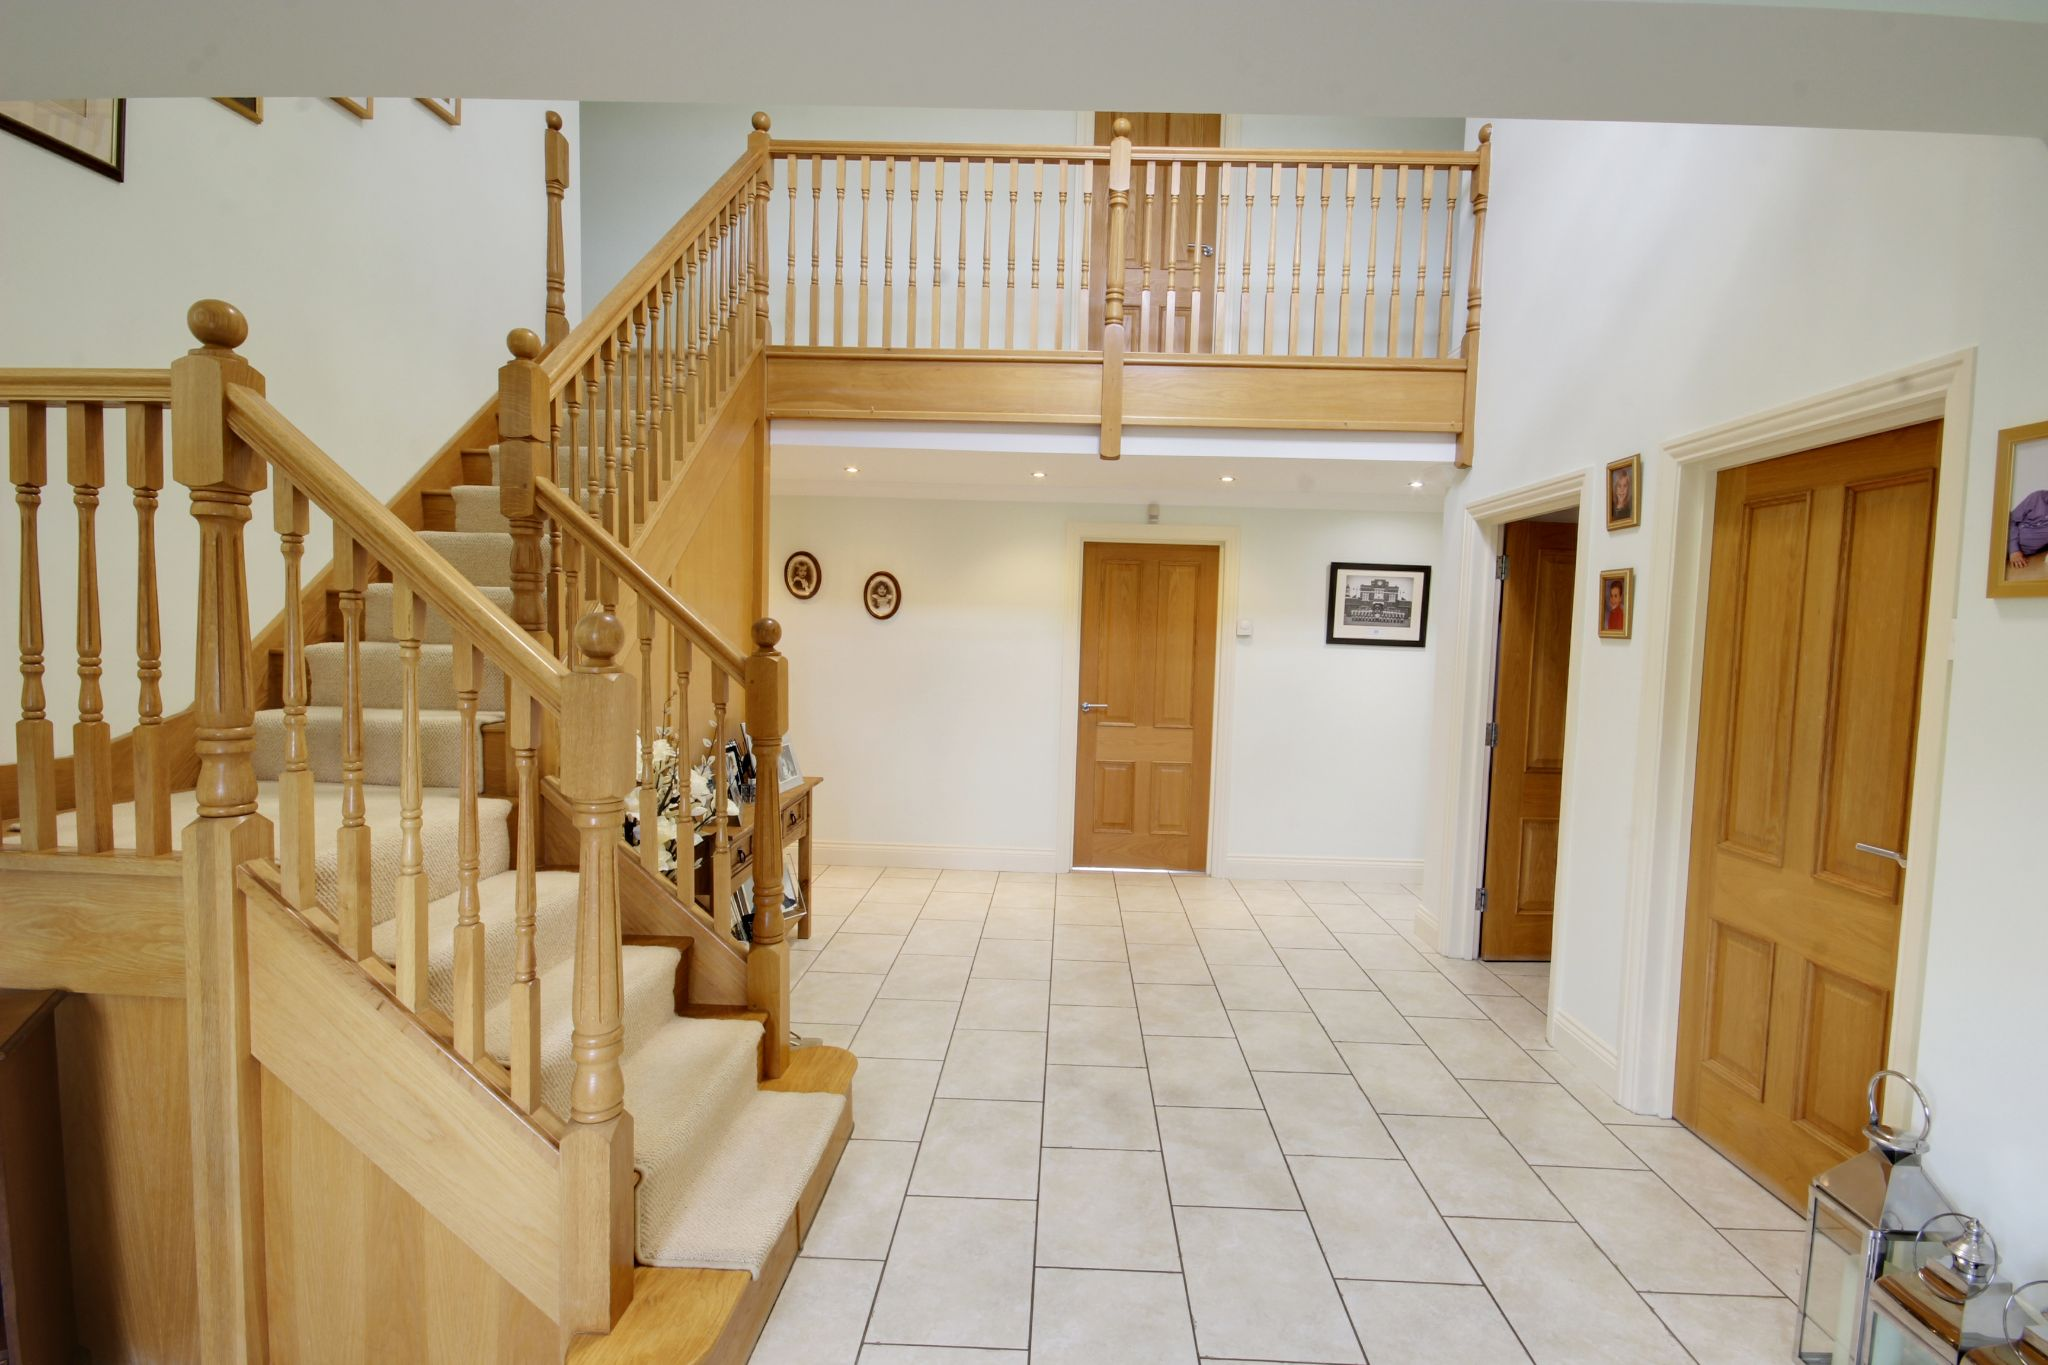 5 bedroom detached house SSTC in North Mymms - Photograph 7